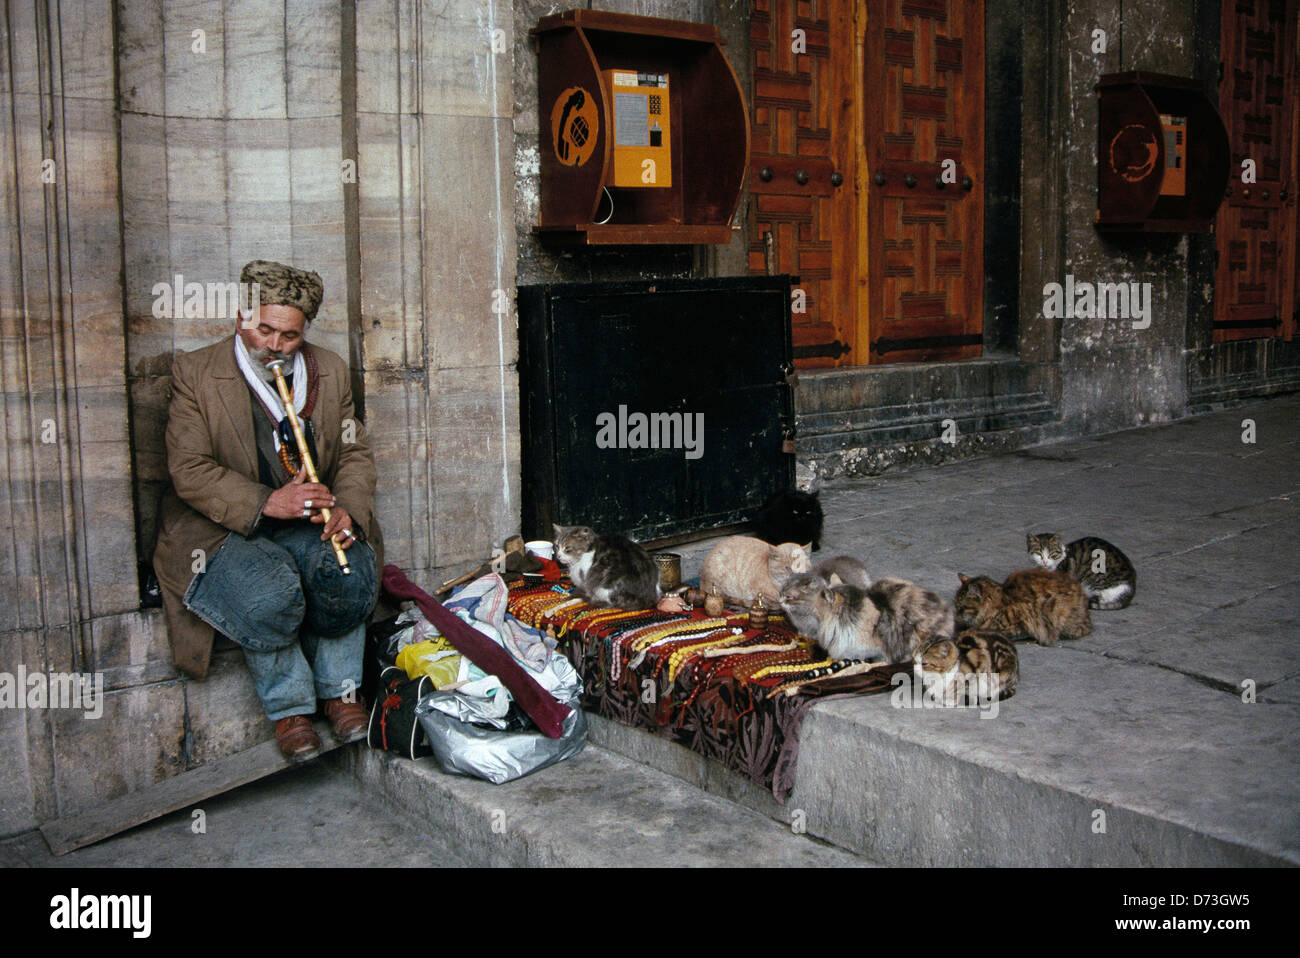 A piper serenades while a flock of cats gather outside the Yeni Cami or New Mosque in Istanbul. - Stock Image